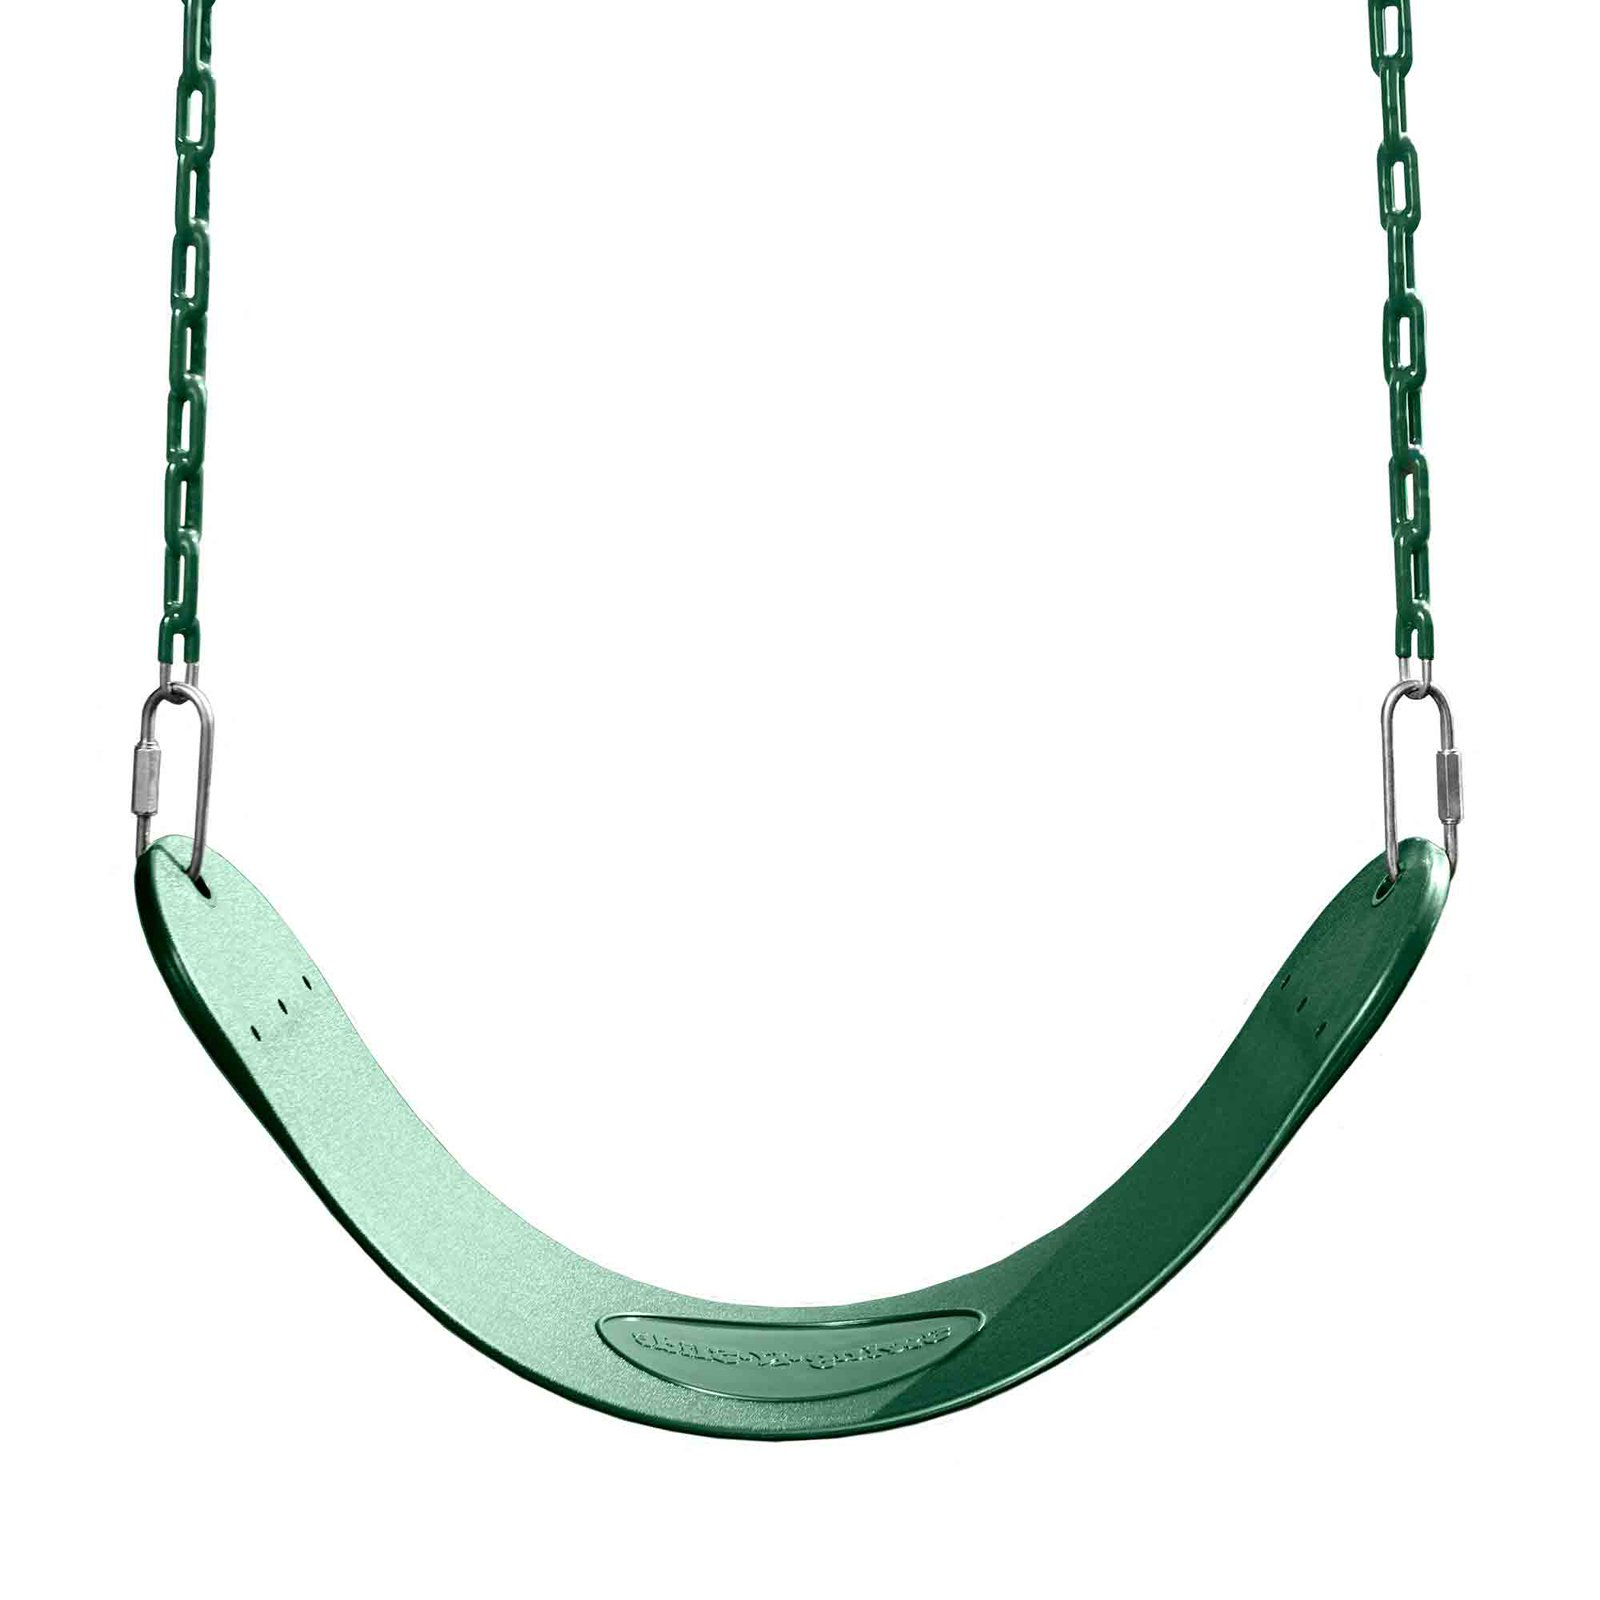 Preferred Swing N Slide Green Swing Seat – Walmart Regarding Swing Seats With Chains (View 20 of 30)